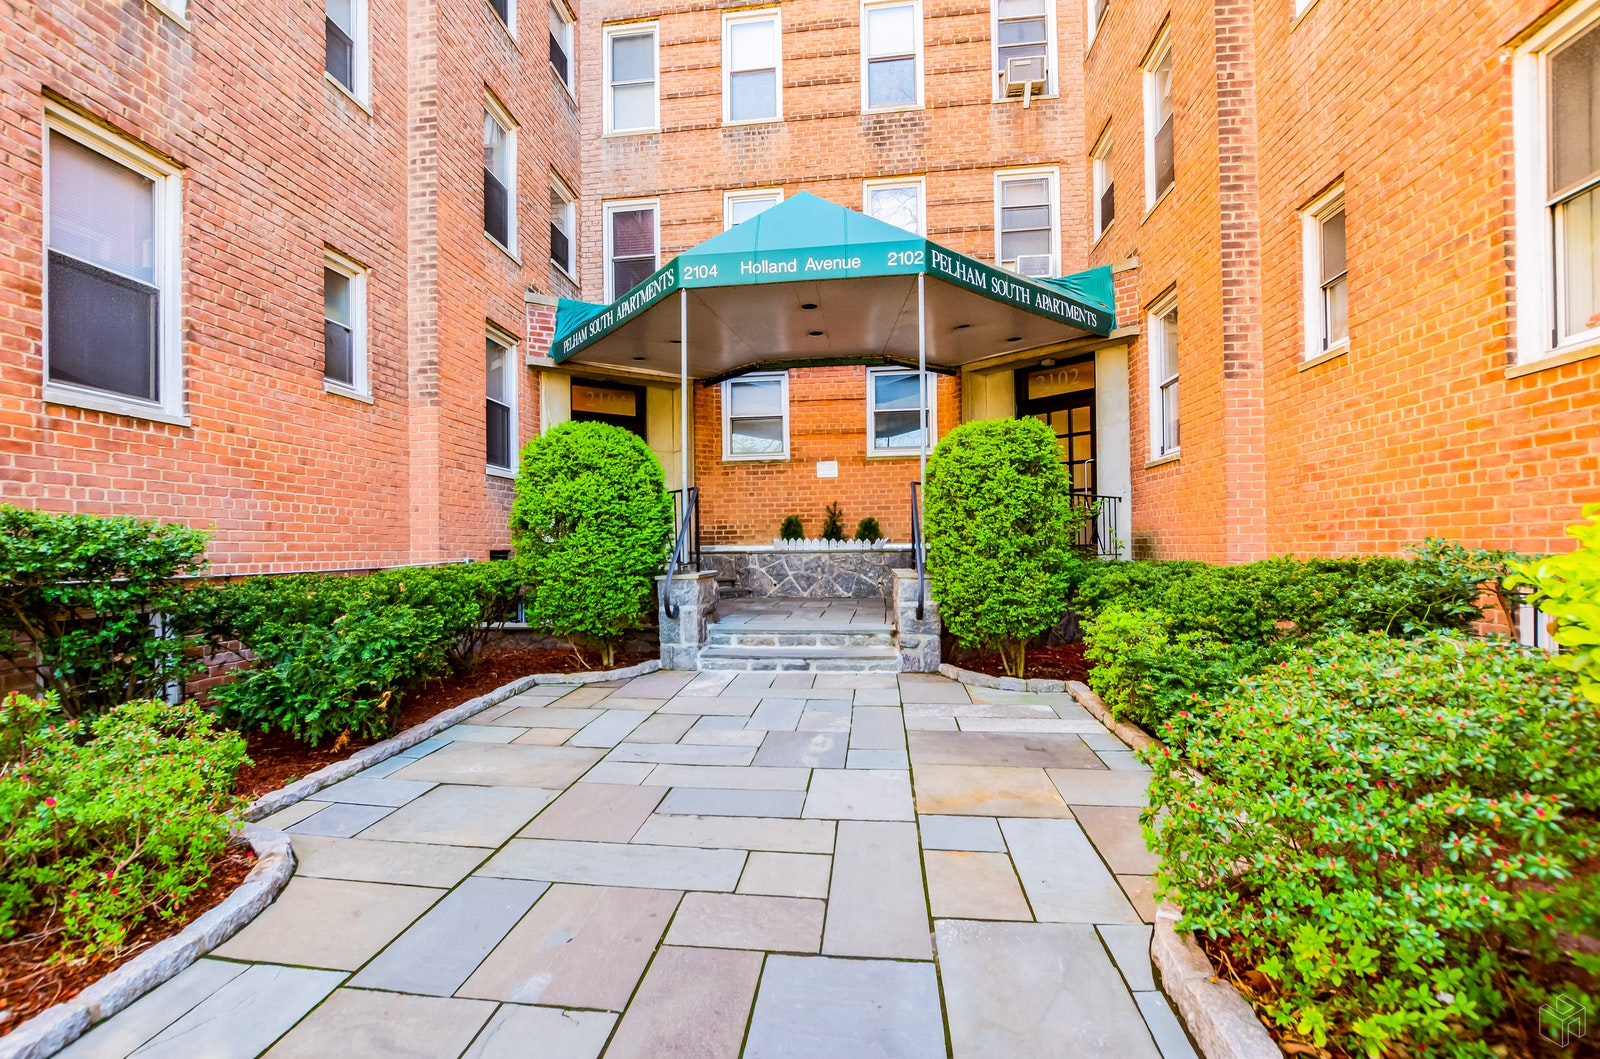 2102 Holland Ave 3a, Pelham Parkway, New York, 10462, $135,000, Sold Property, Halstead Real Estate, Photo 1